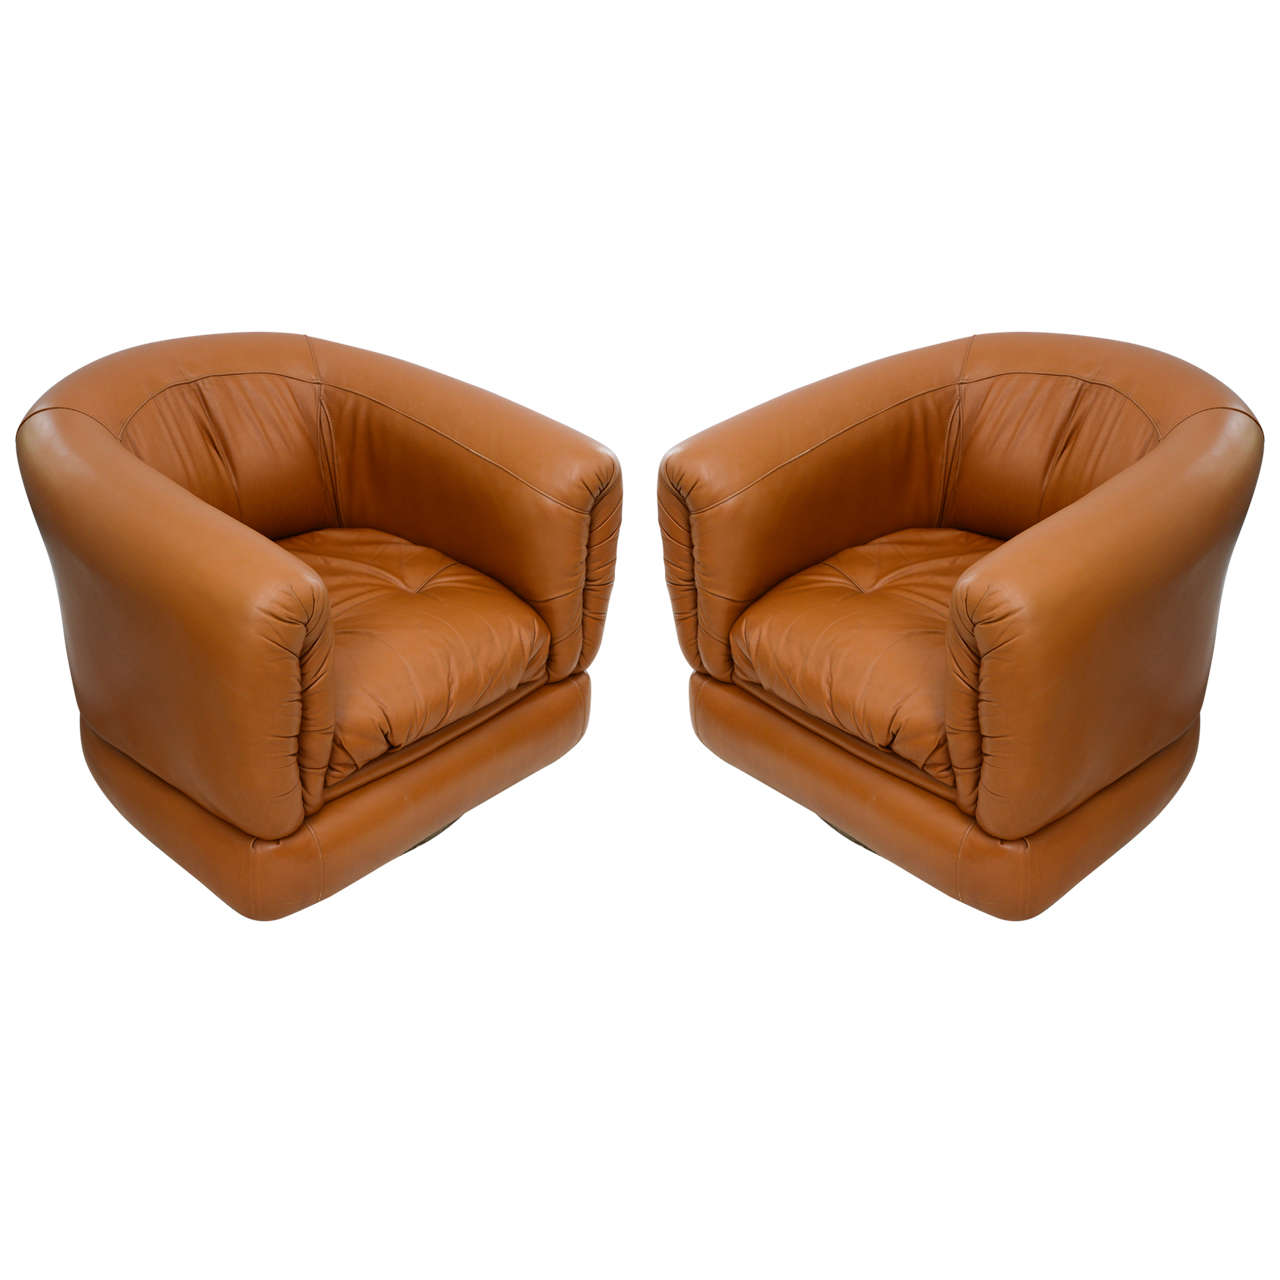 Pair of 1970s Brazilian Barrel Swivel Leather Chairs at